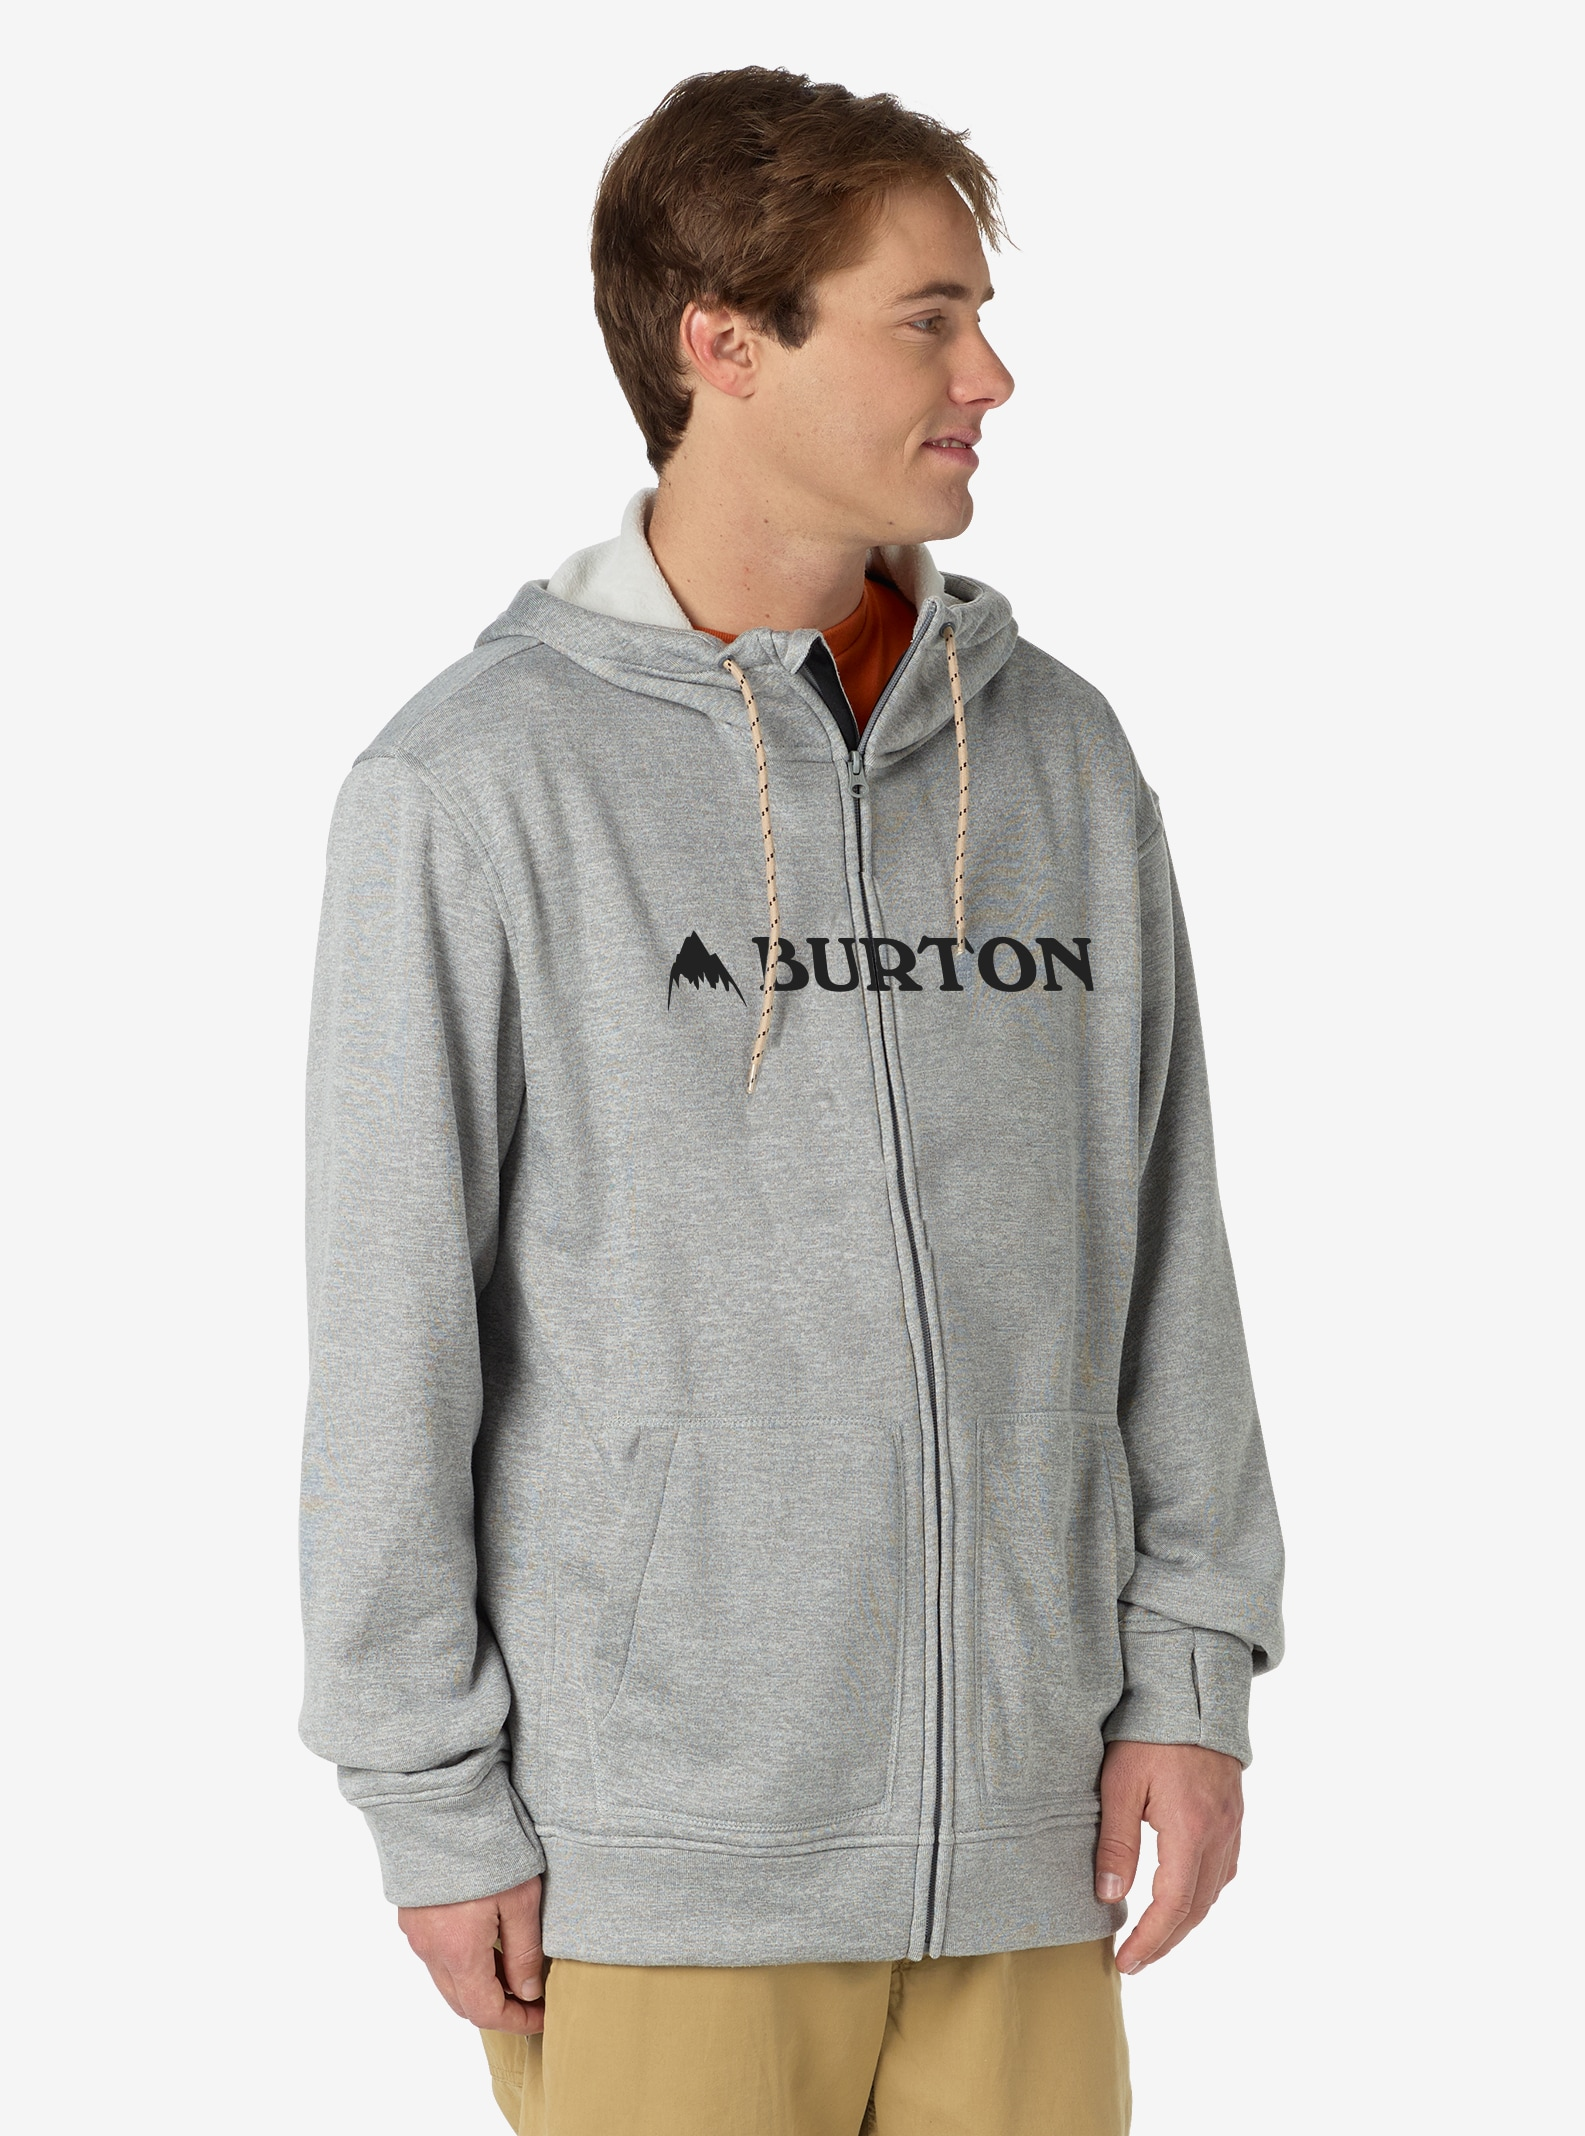 Men's Burton Oak Full-Zip Hoodie shown in Monument Heather